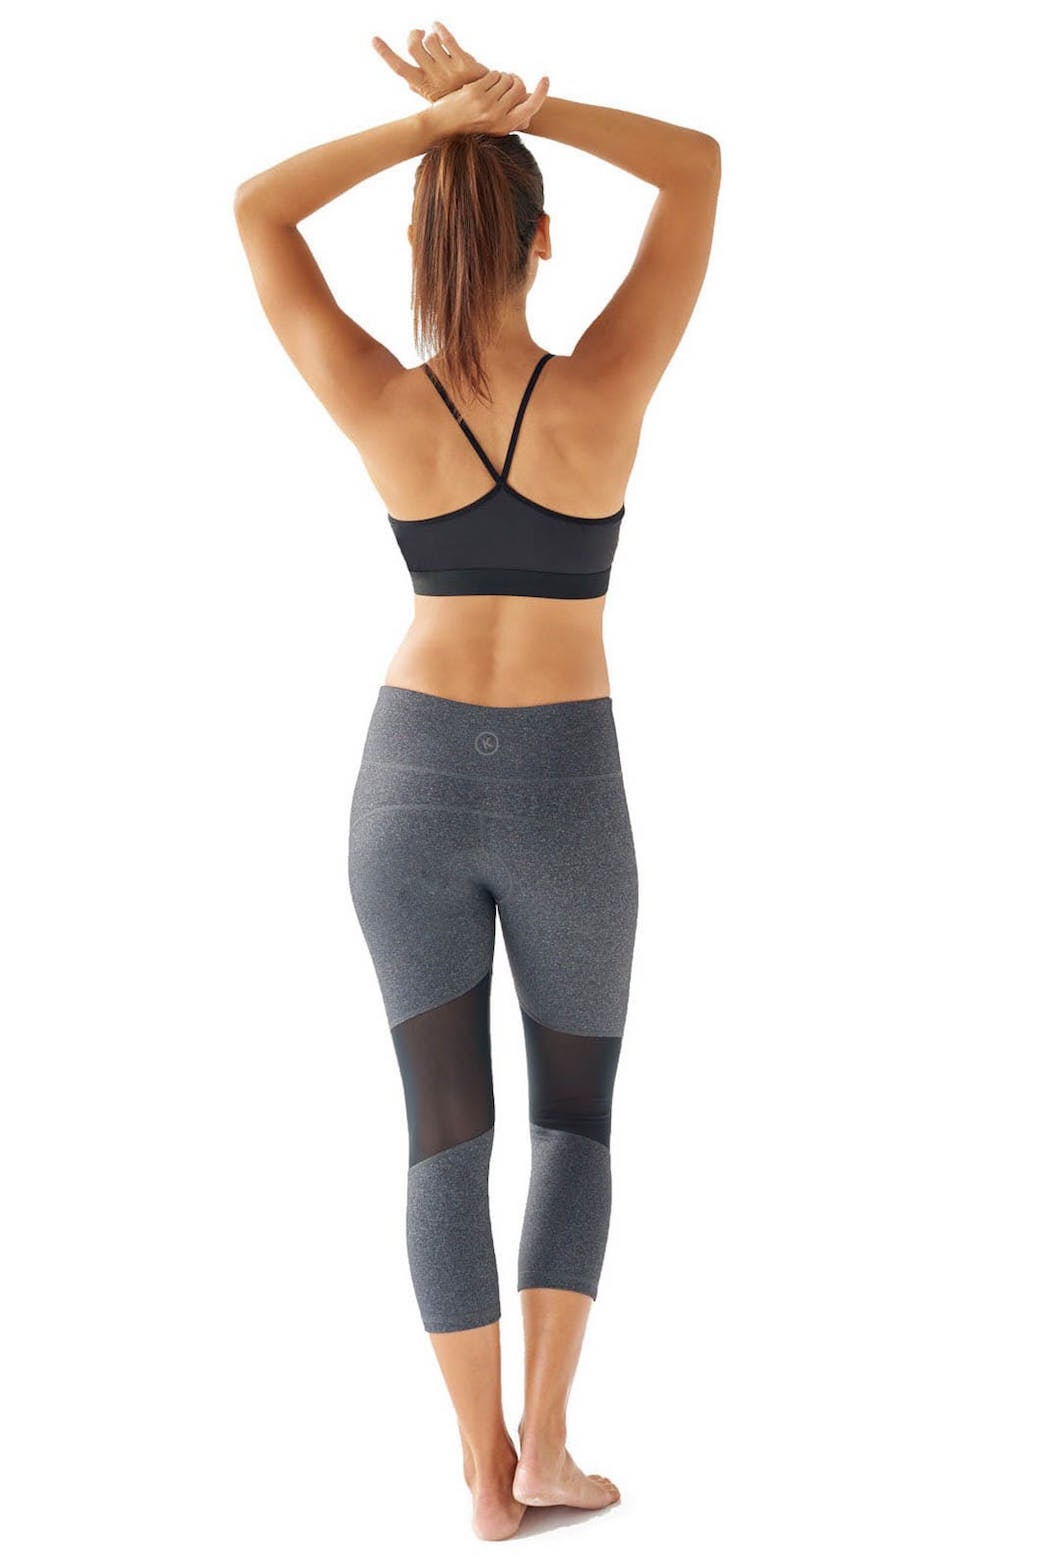 The Best Workout Leggings for Going Commando - Racked